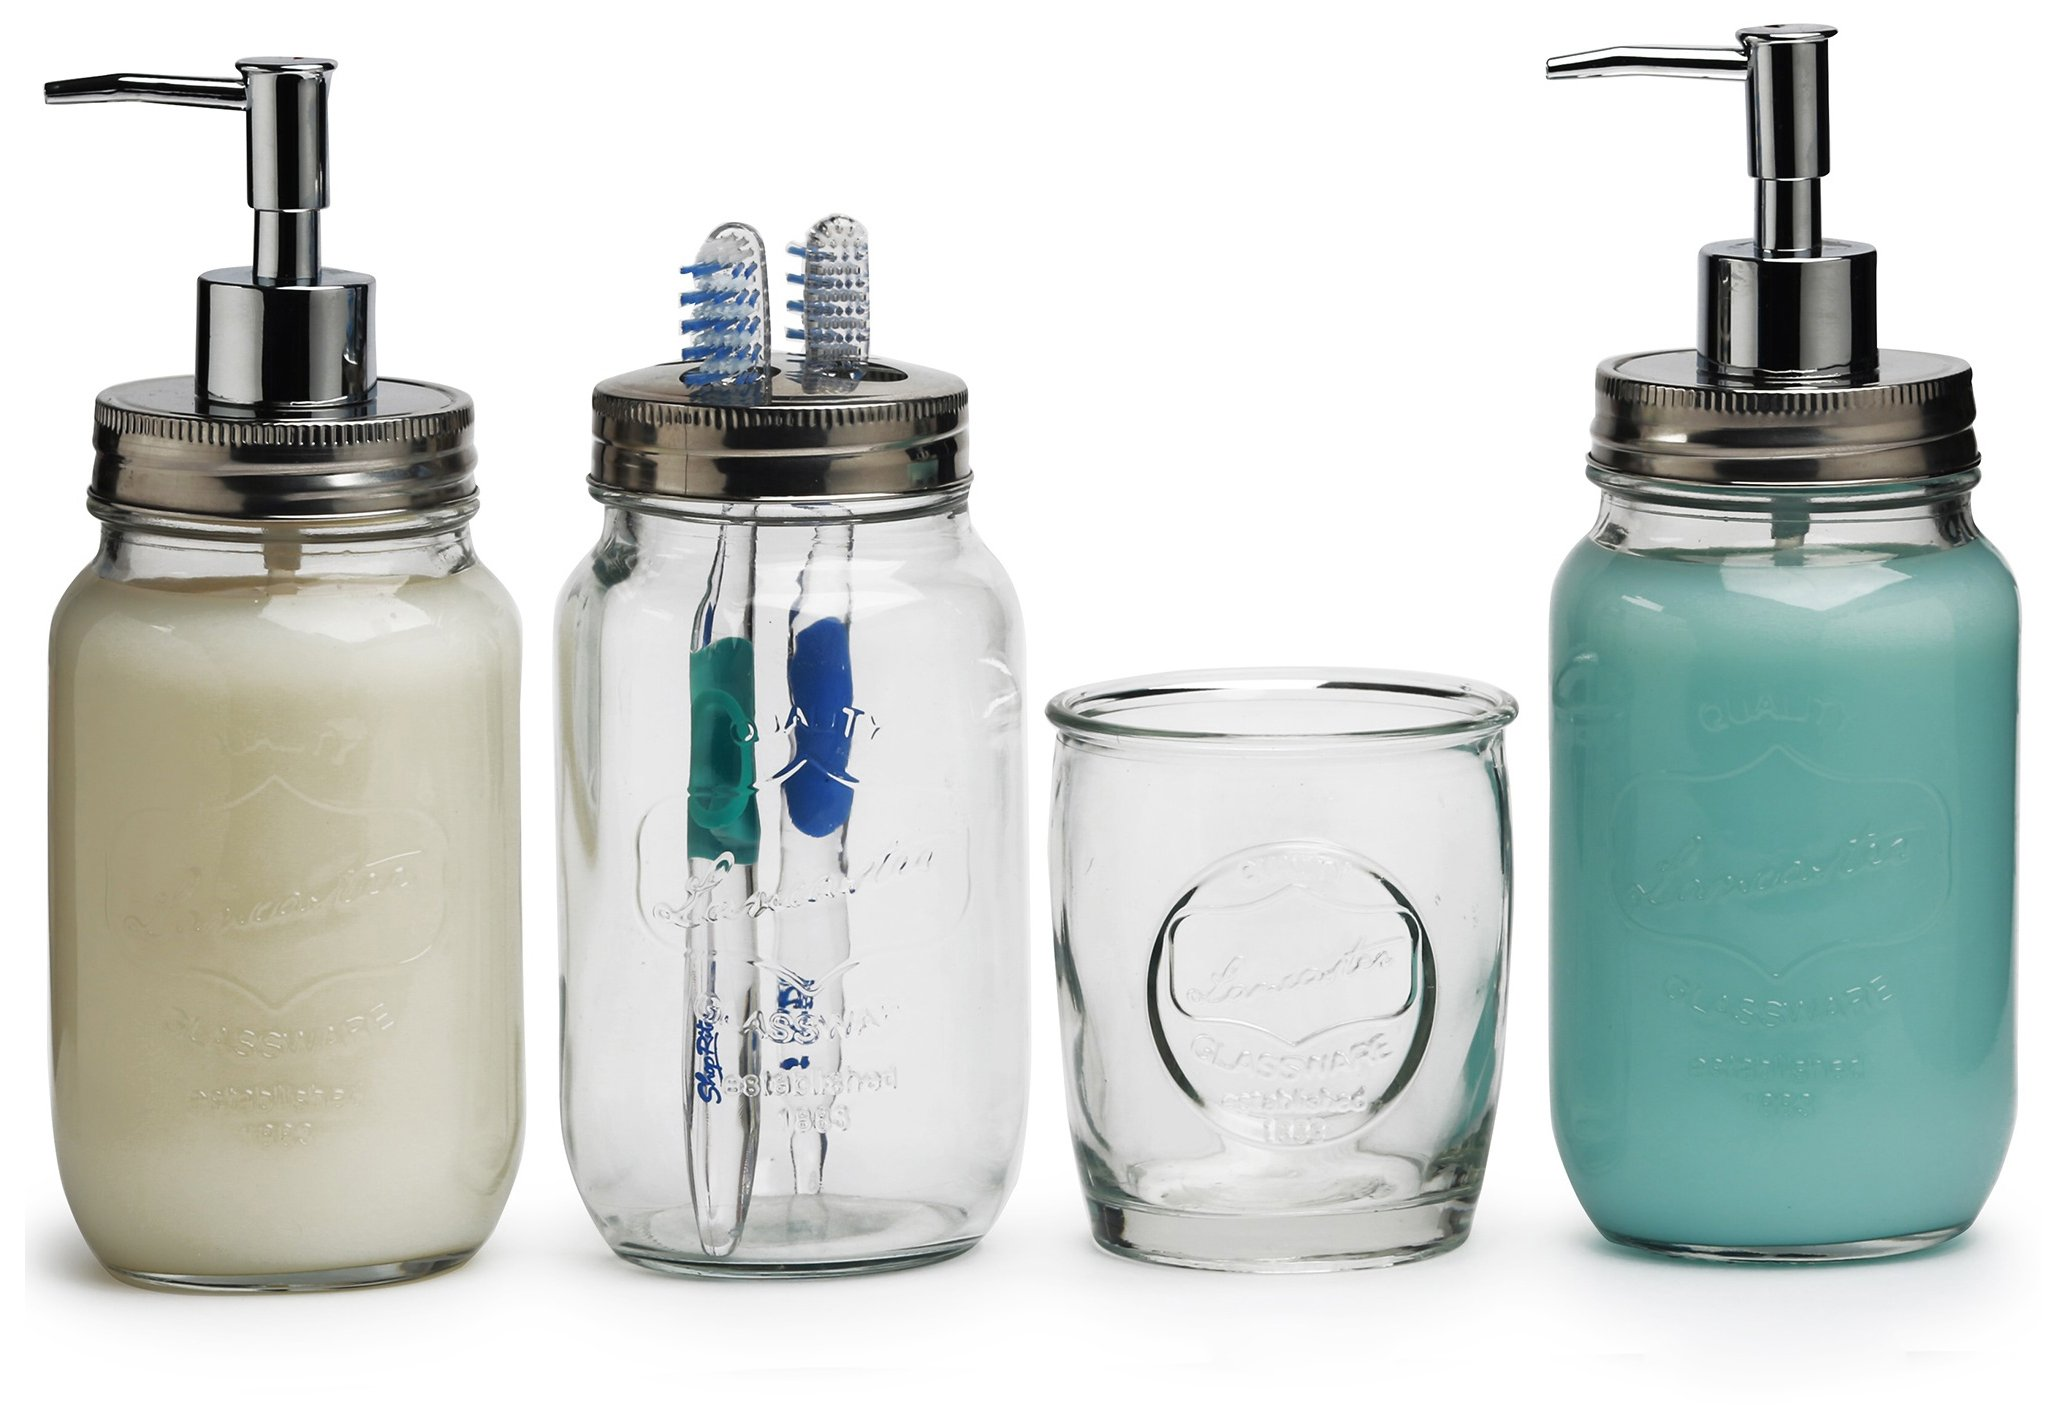 Circleware Lancaster Set of 4 Glass Bathroom Accessories, 24 ounce Mason Jar Soap Pump Dispenser Bottle, 24oz. Lotion Dispenser, Toothbrush Holder and Matching 13 oz. Drinking Glass